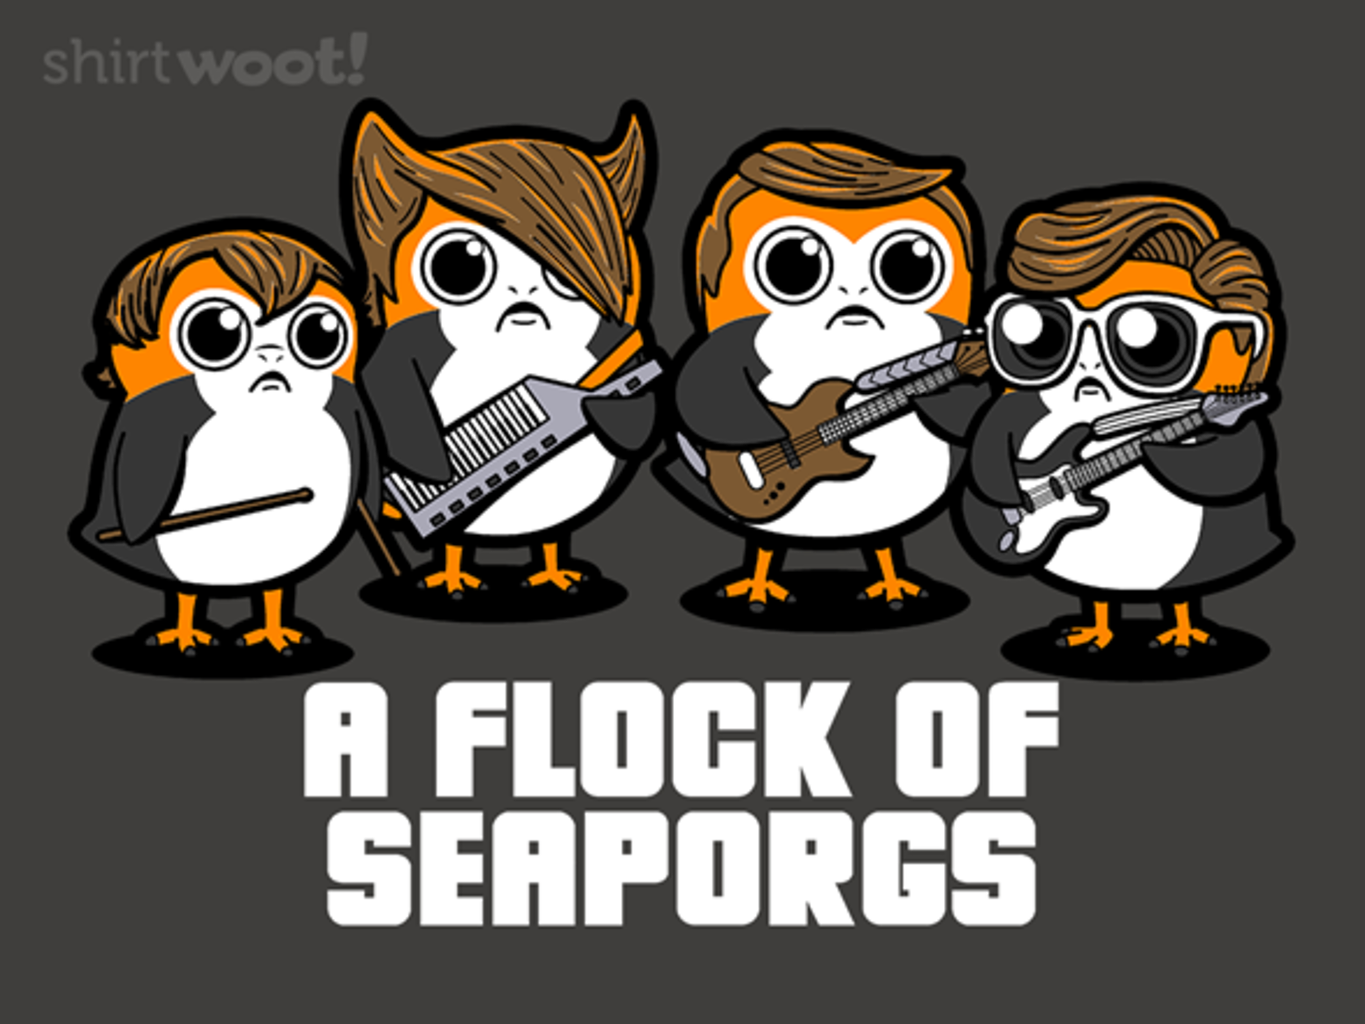 Woot!: A Flock of Seaporgs